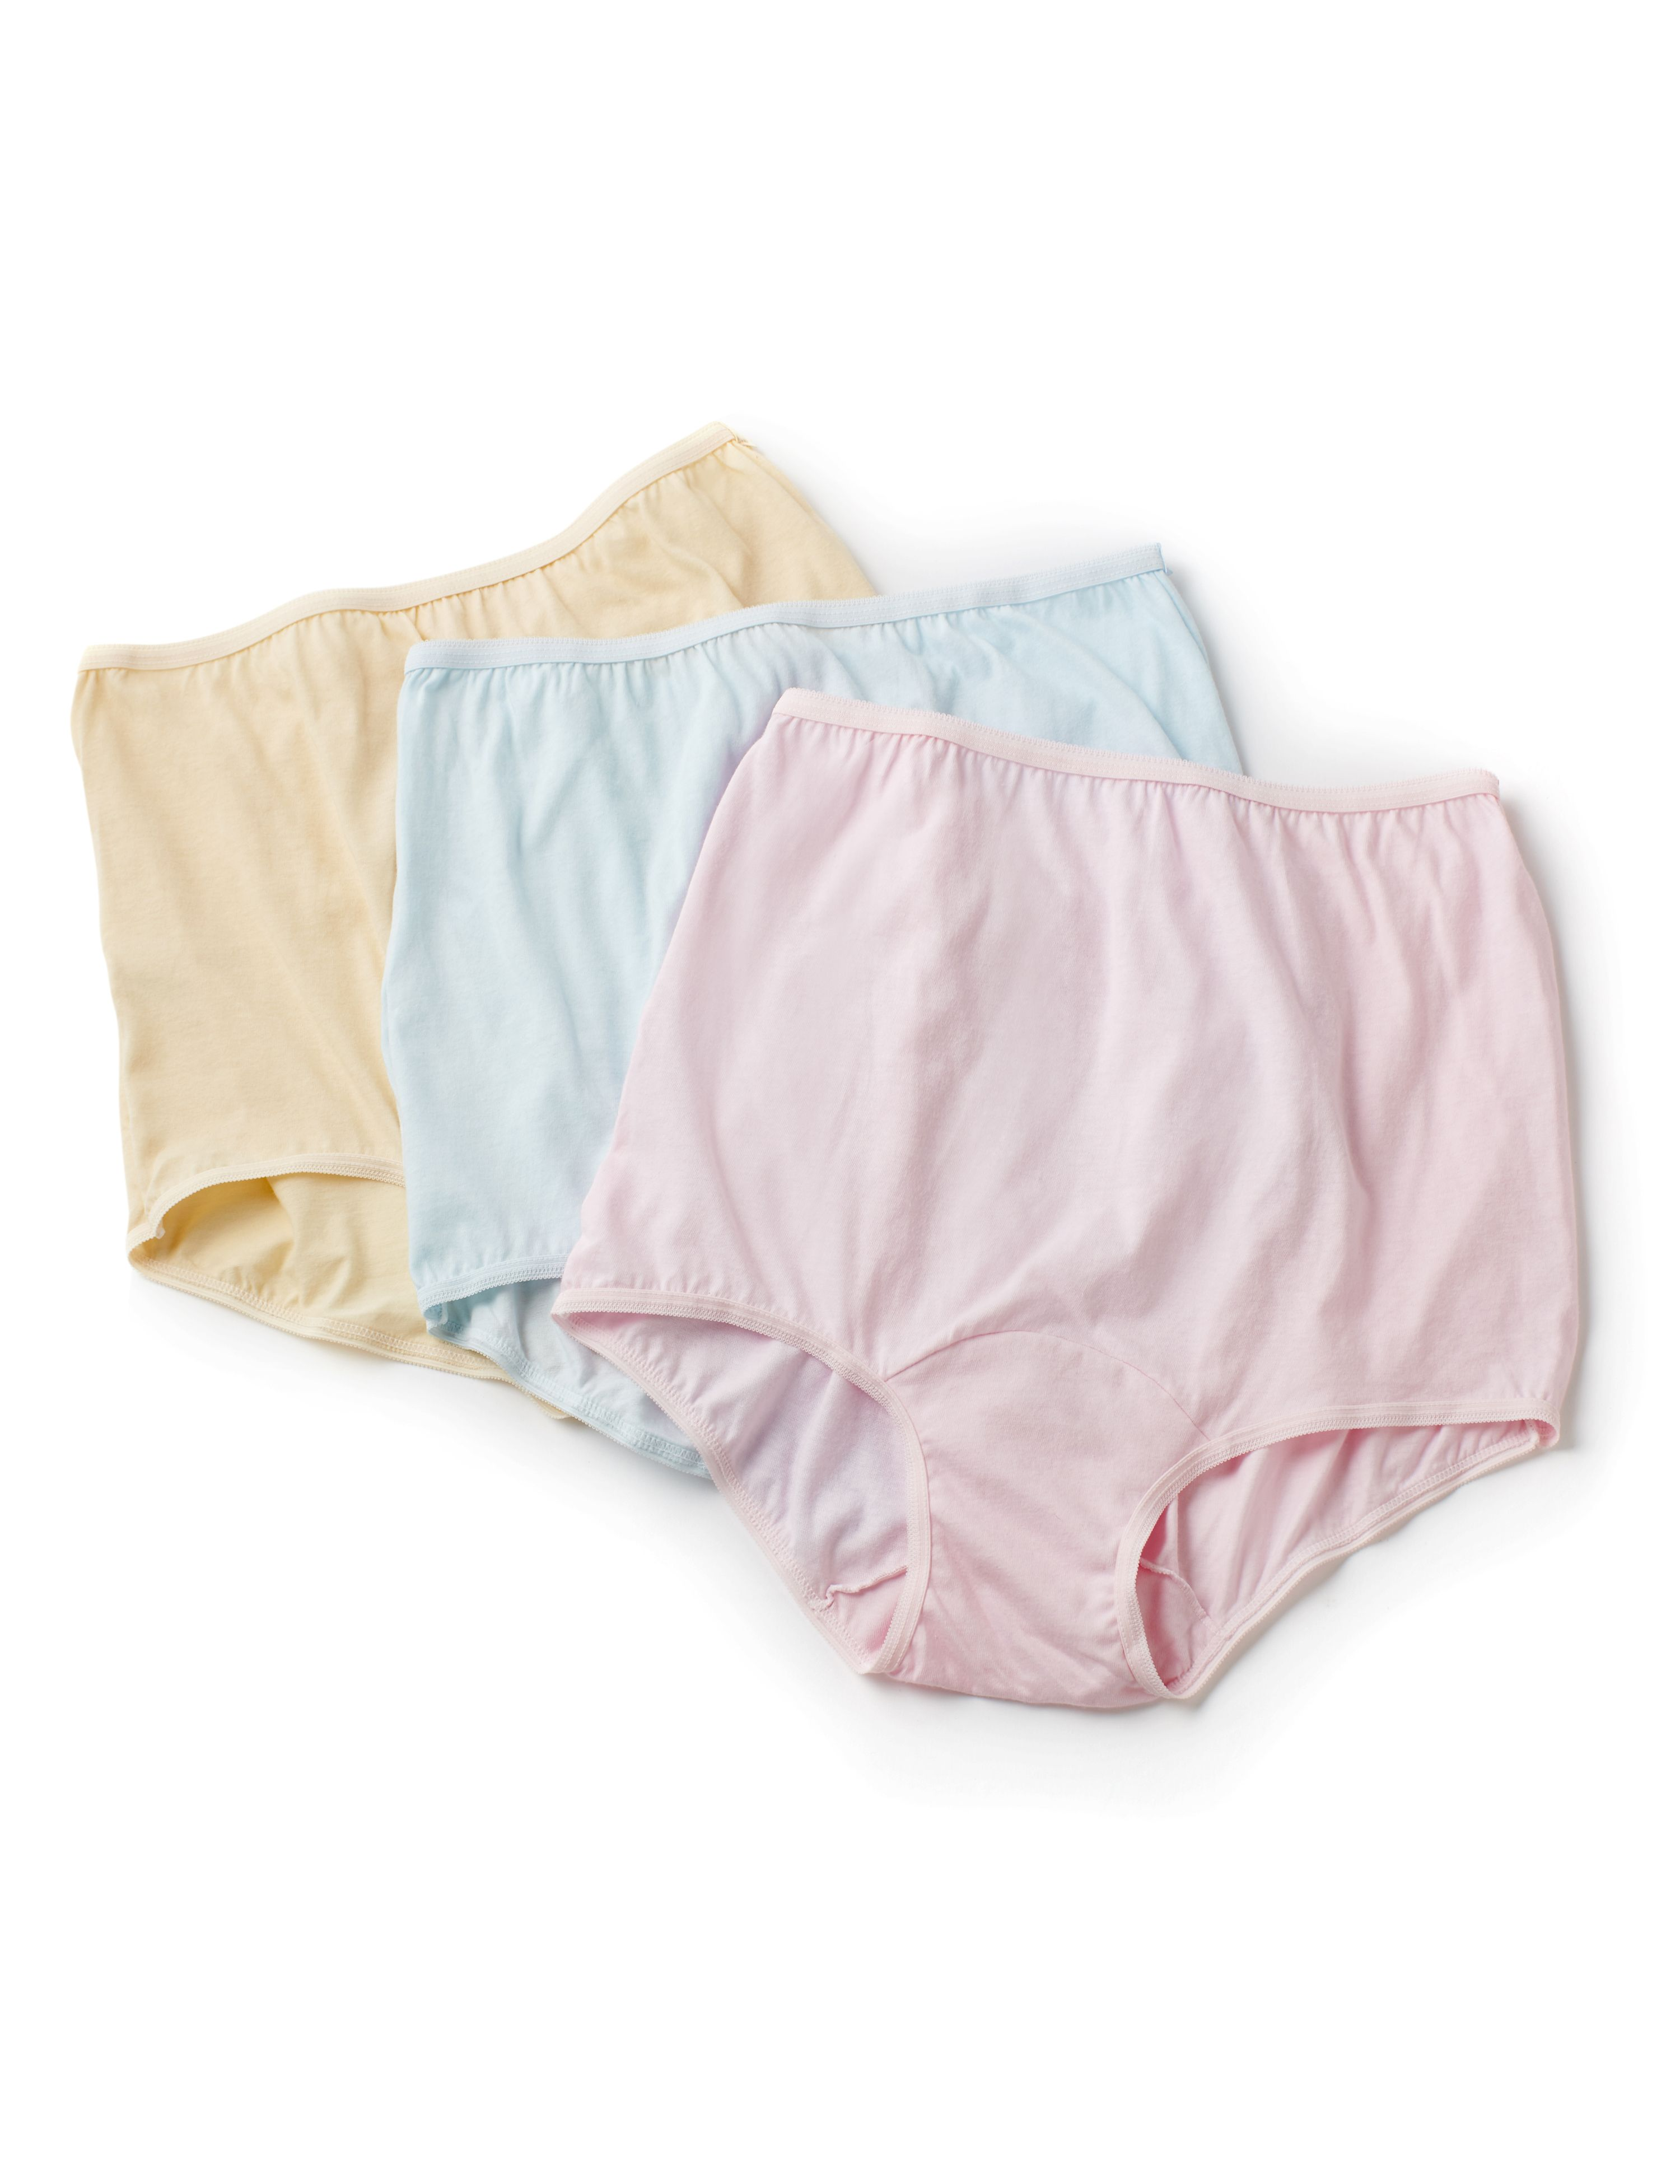 3-Pack Cotton Panties 3-Pack Cotton Panties MP-200538190